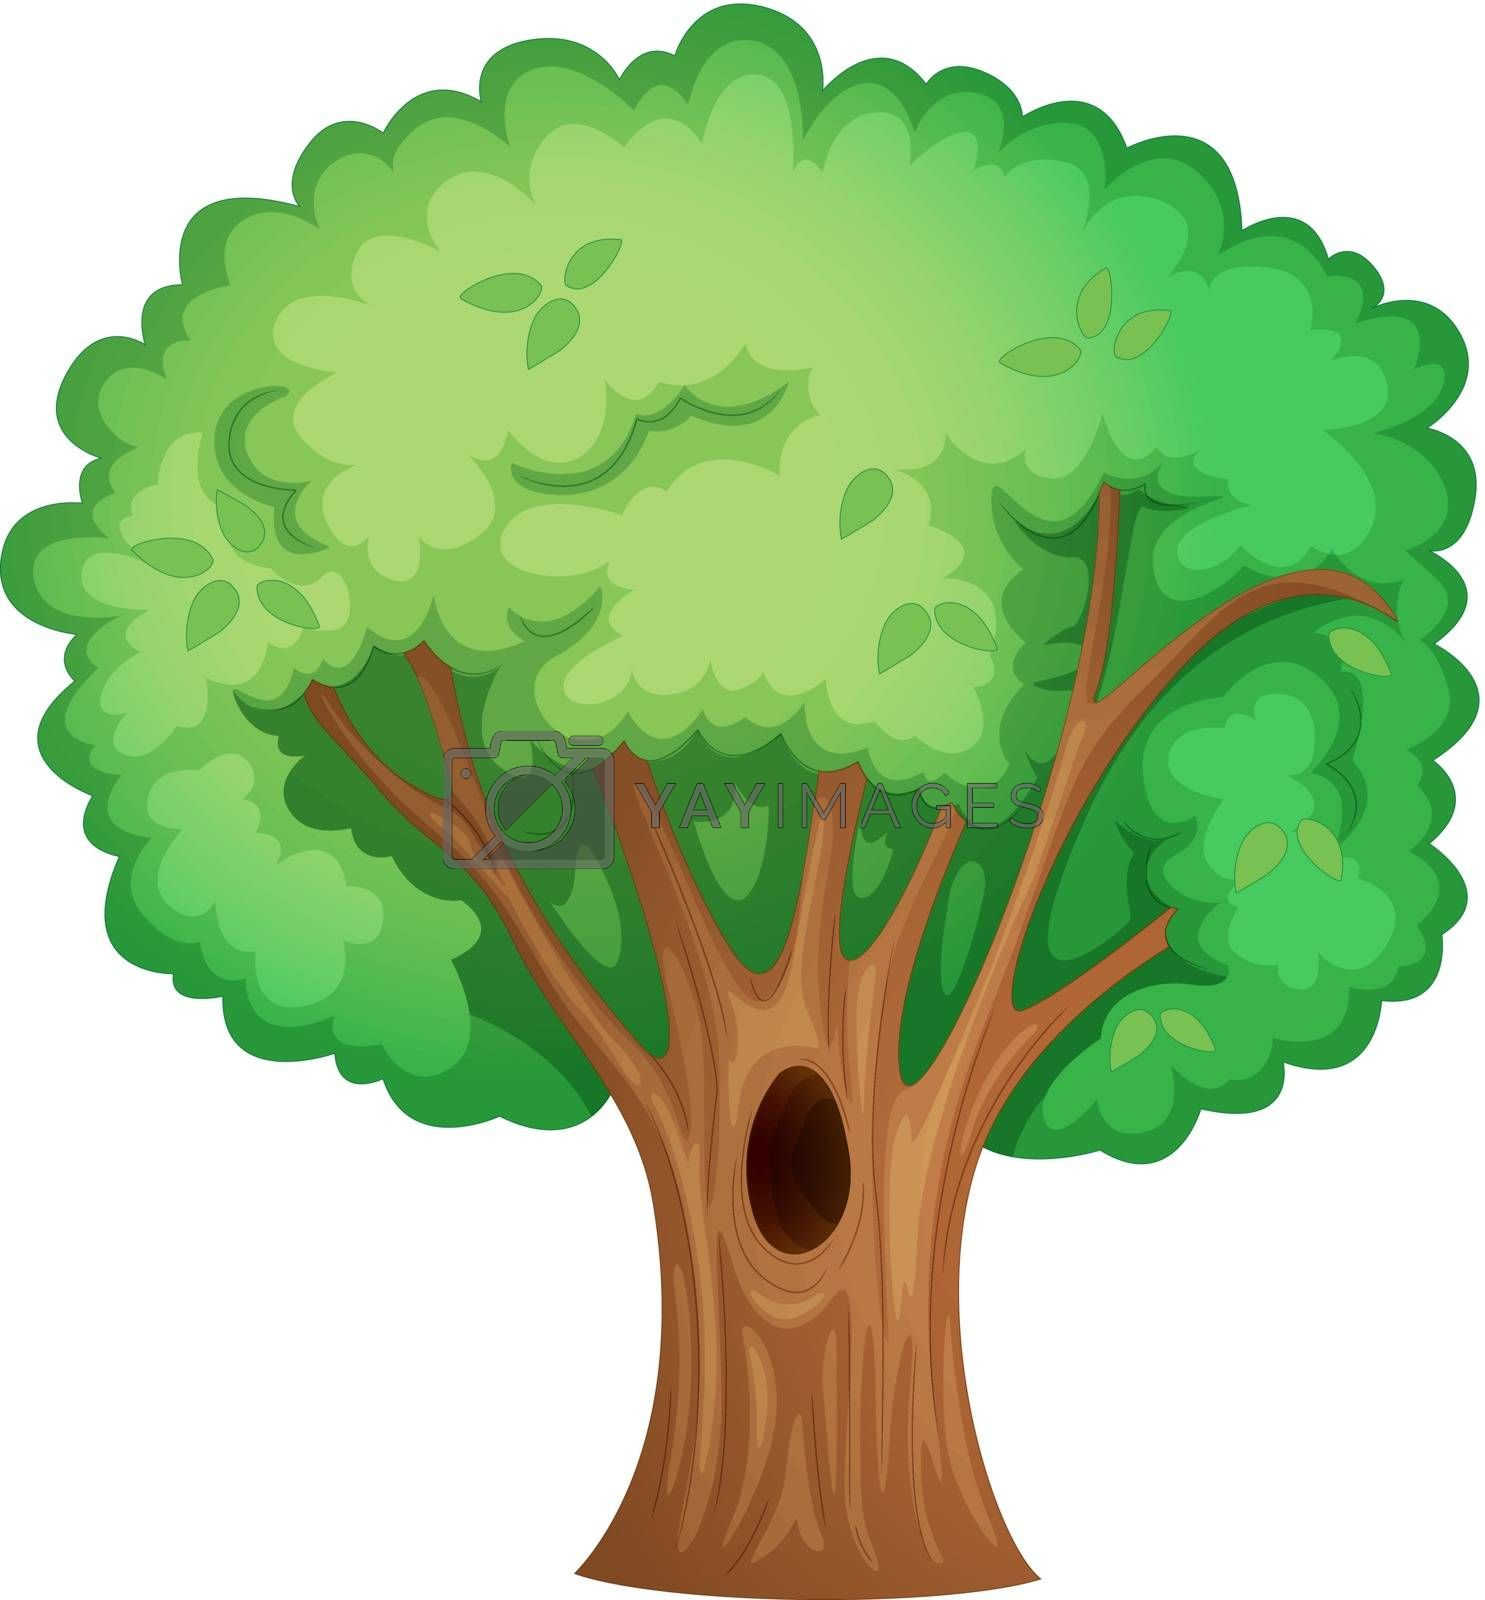 Illustration of isolated tree with hollow